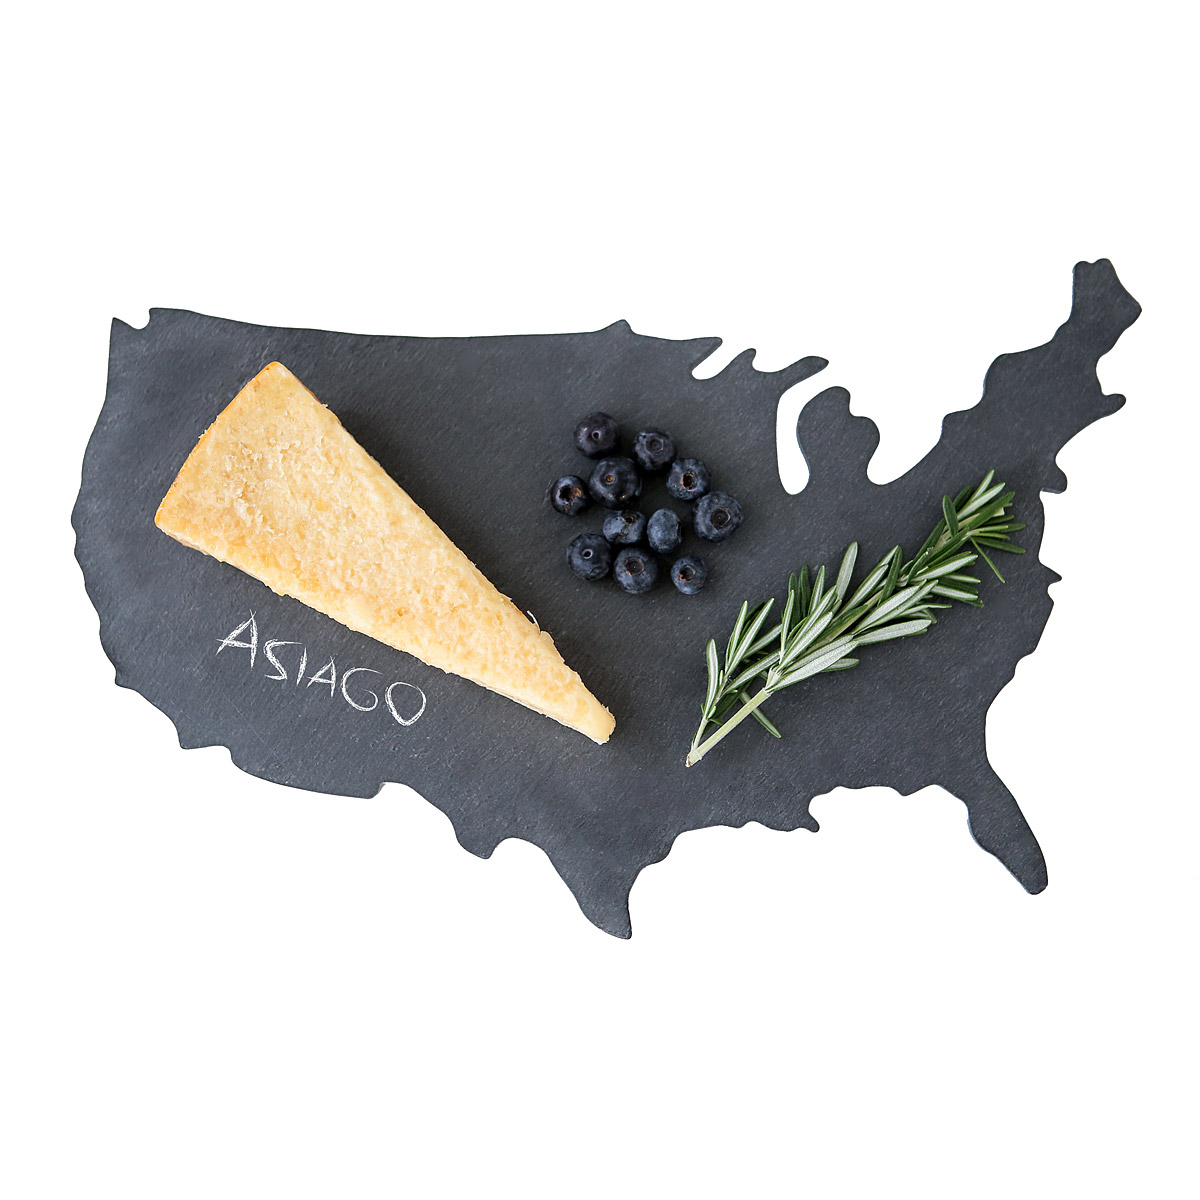 Slate Cheese boards in the shape of your state? Sign me up for a Washington and a New York! I can't wait to display these at dinner parties and use them on our tabletop to serve treats for movie nights, game days and even art projects! Find it  Here